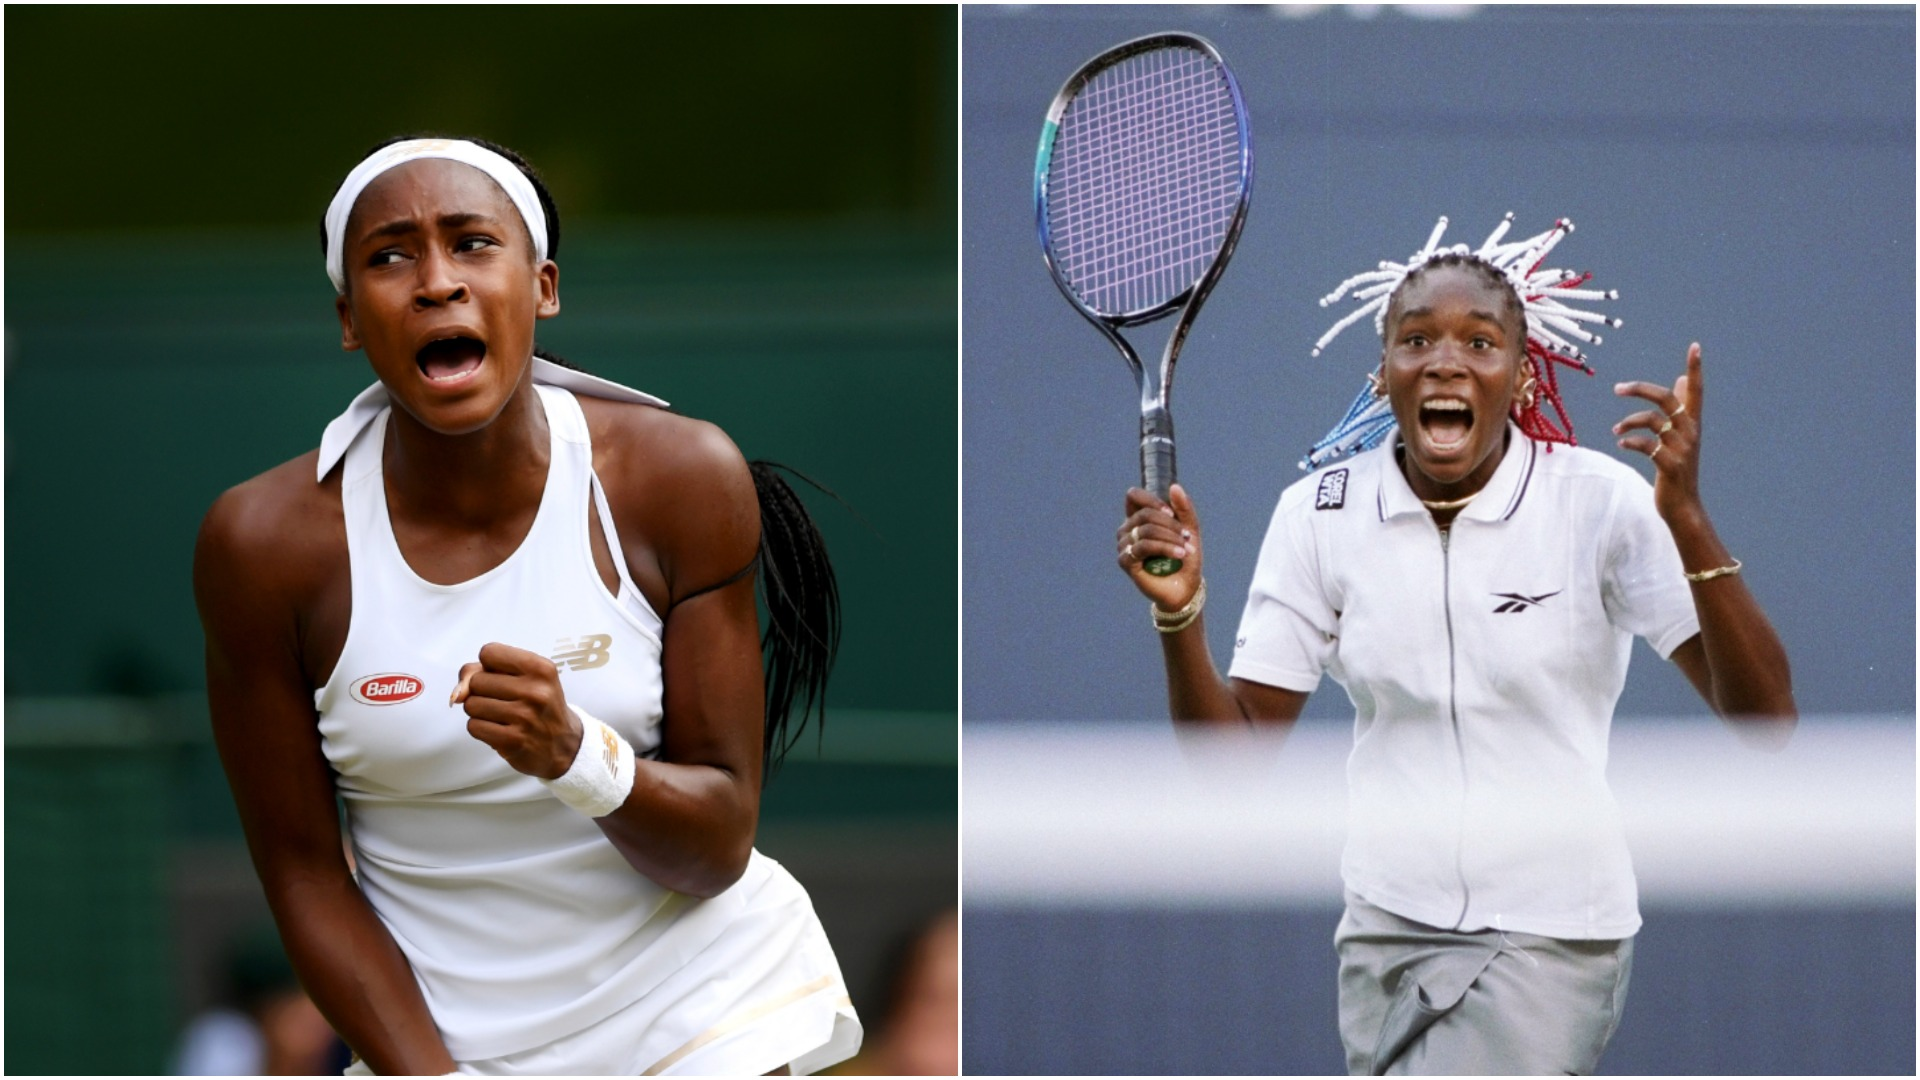 US Open 2019: How does Coco Gauff compare to 1997 Venus Williams?